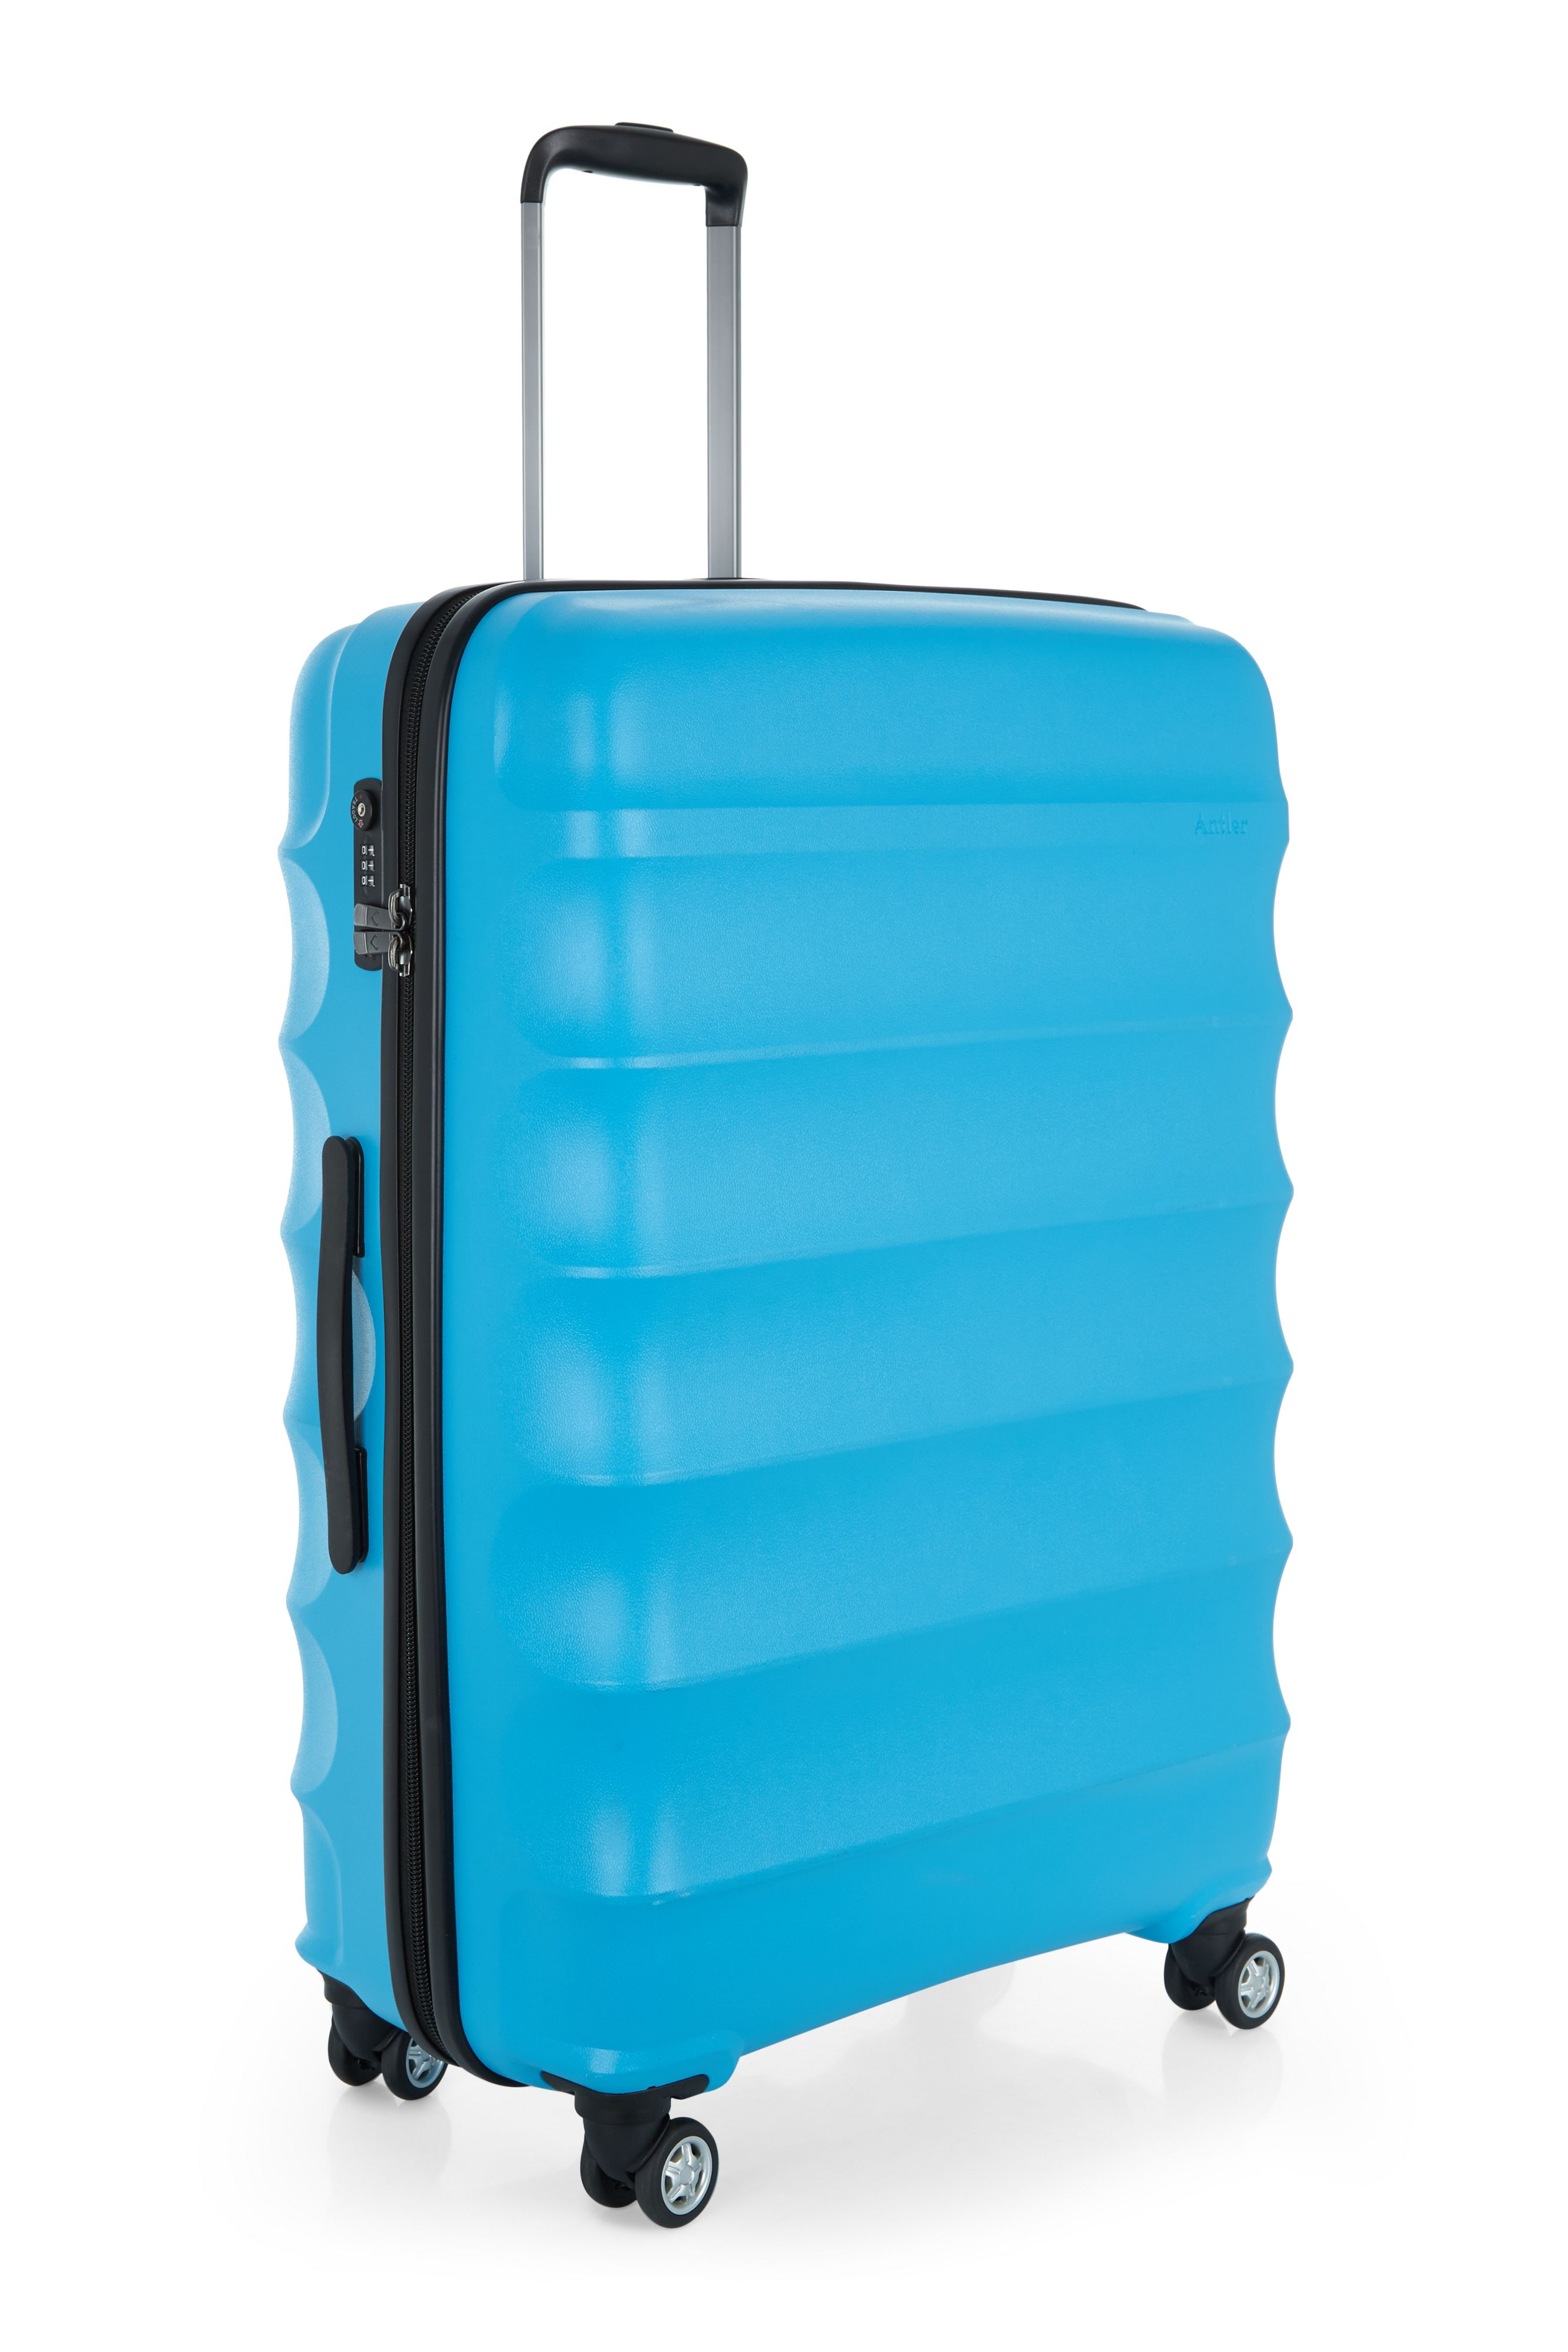 Antler Juno Turquoise Large Case, Turquoise